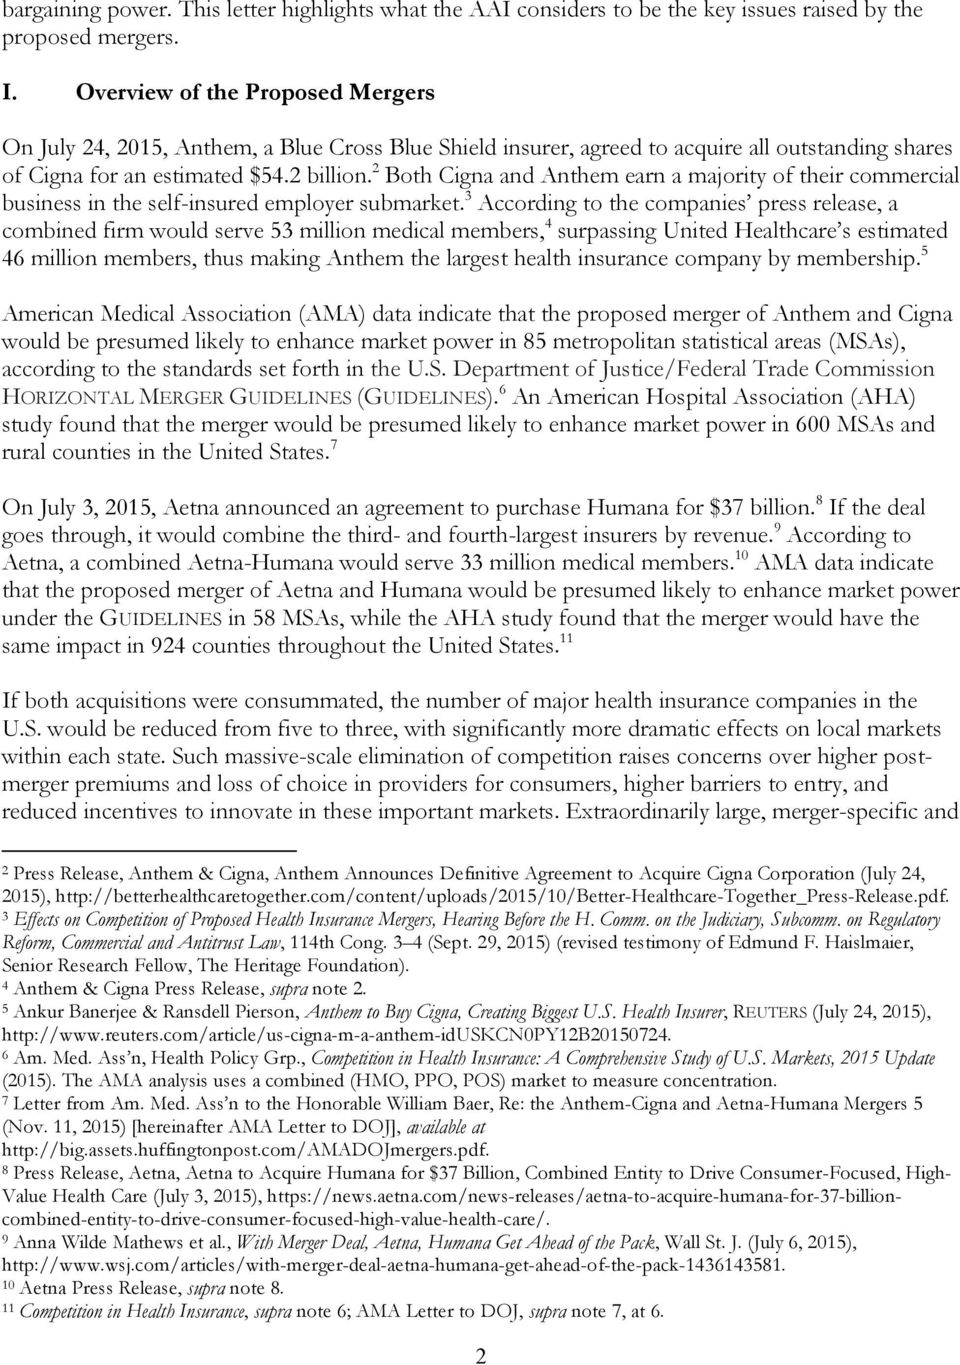 January 11, Re: Antitrust Review of the Aetna-Humana and